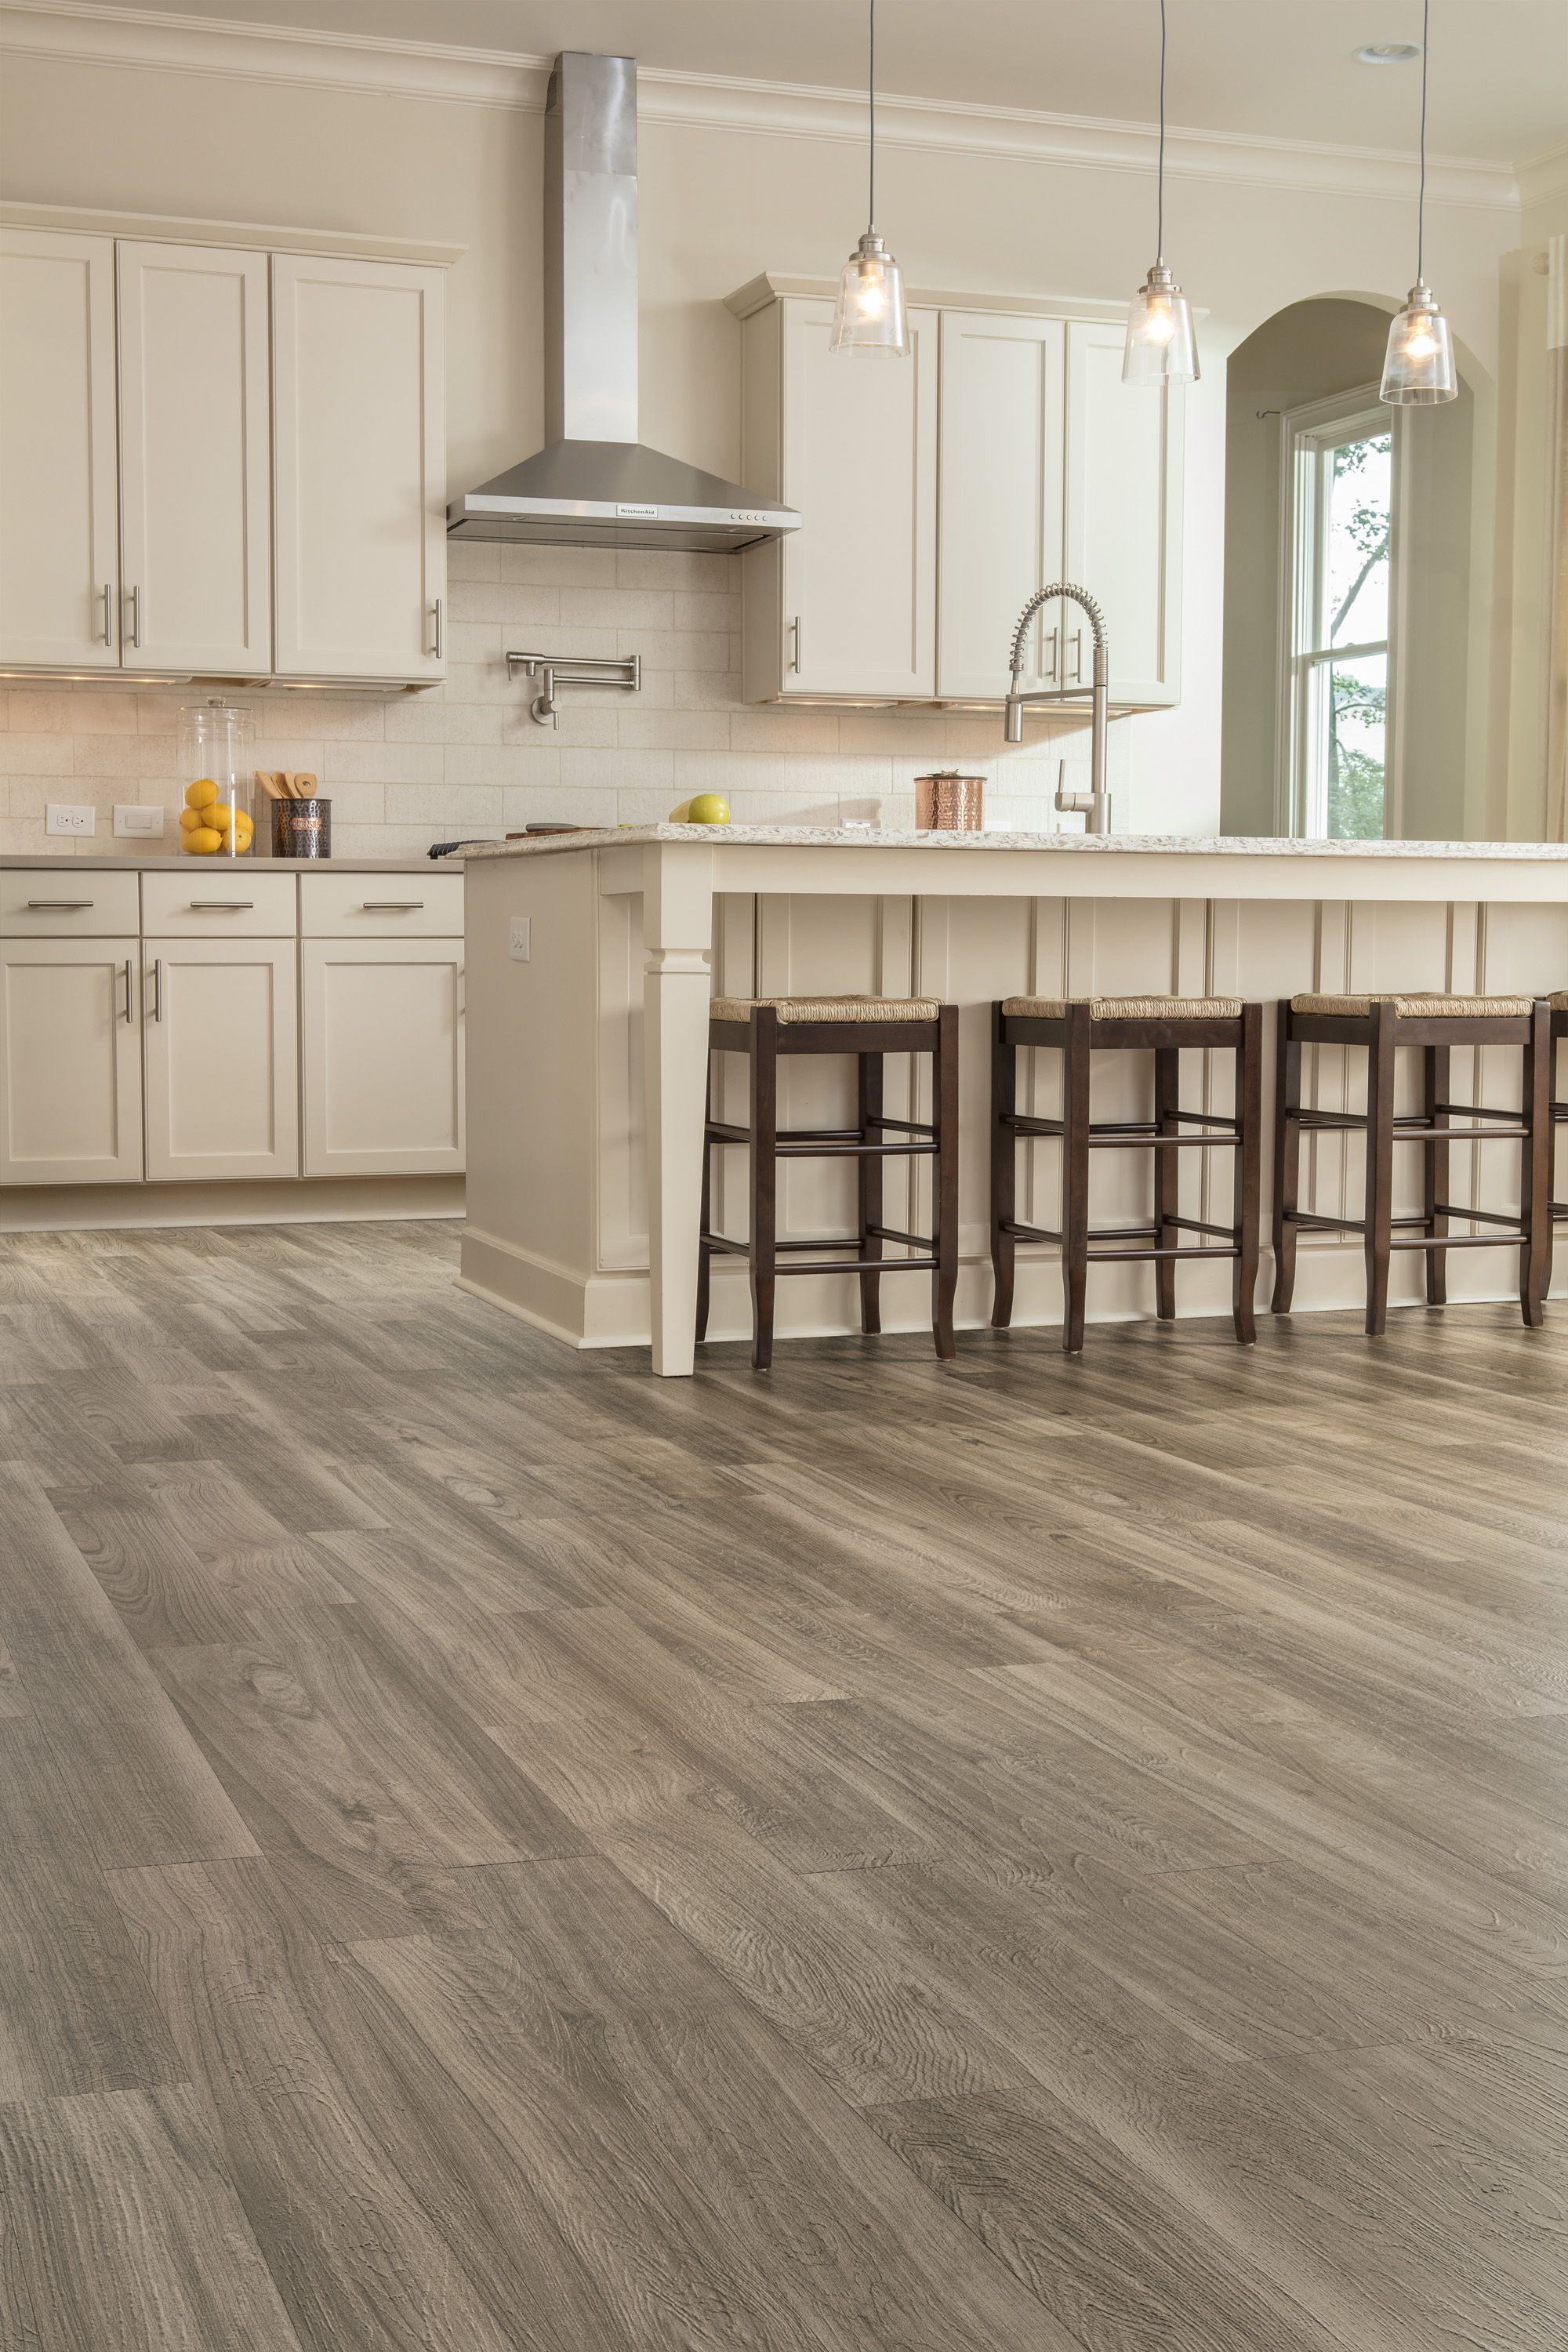 Featuring Luxury Vinyl Plank And Tile Point Of View From Our Design Mix Flooring Solution Empowers You To Custom Floor Design Floor Design Luxury Vinyl Plank